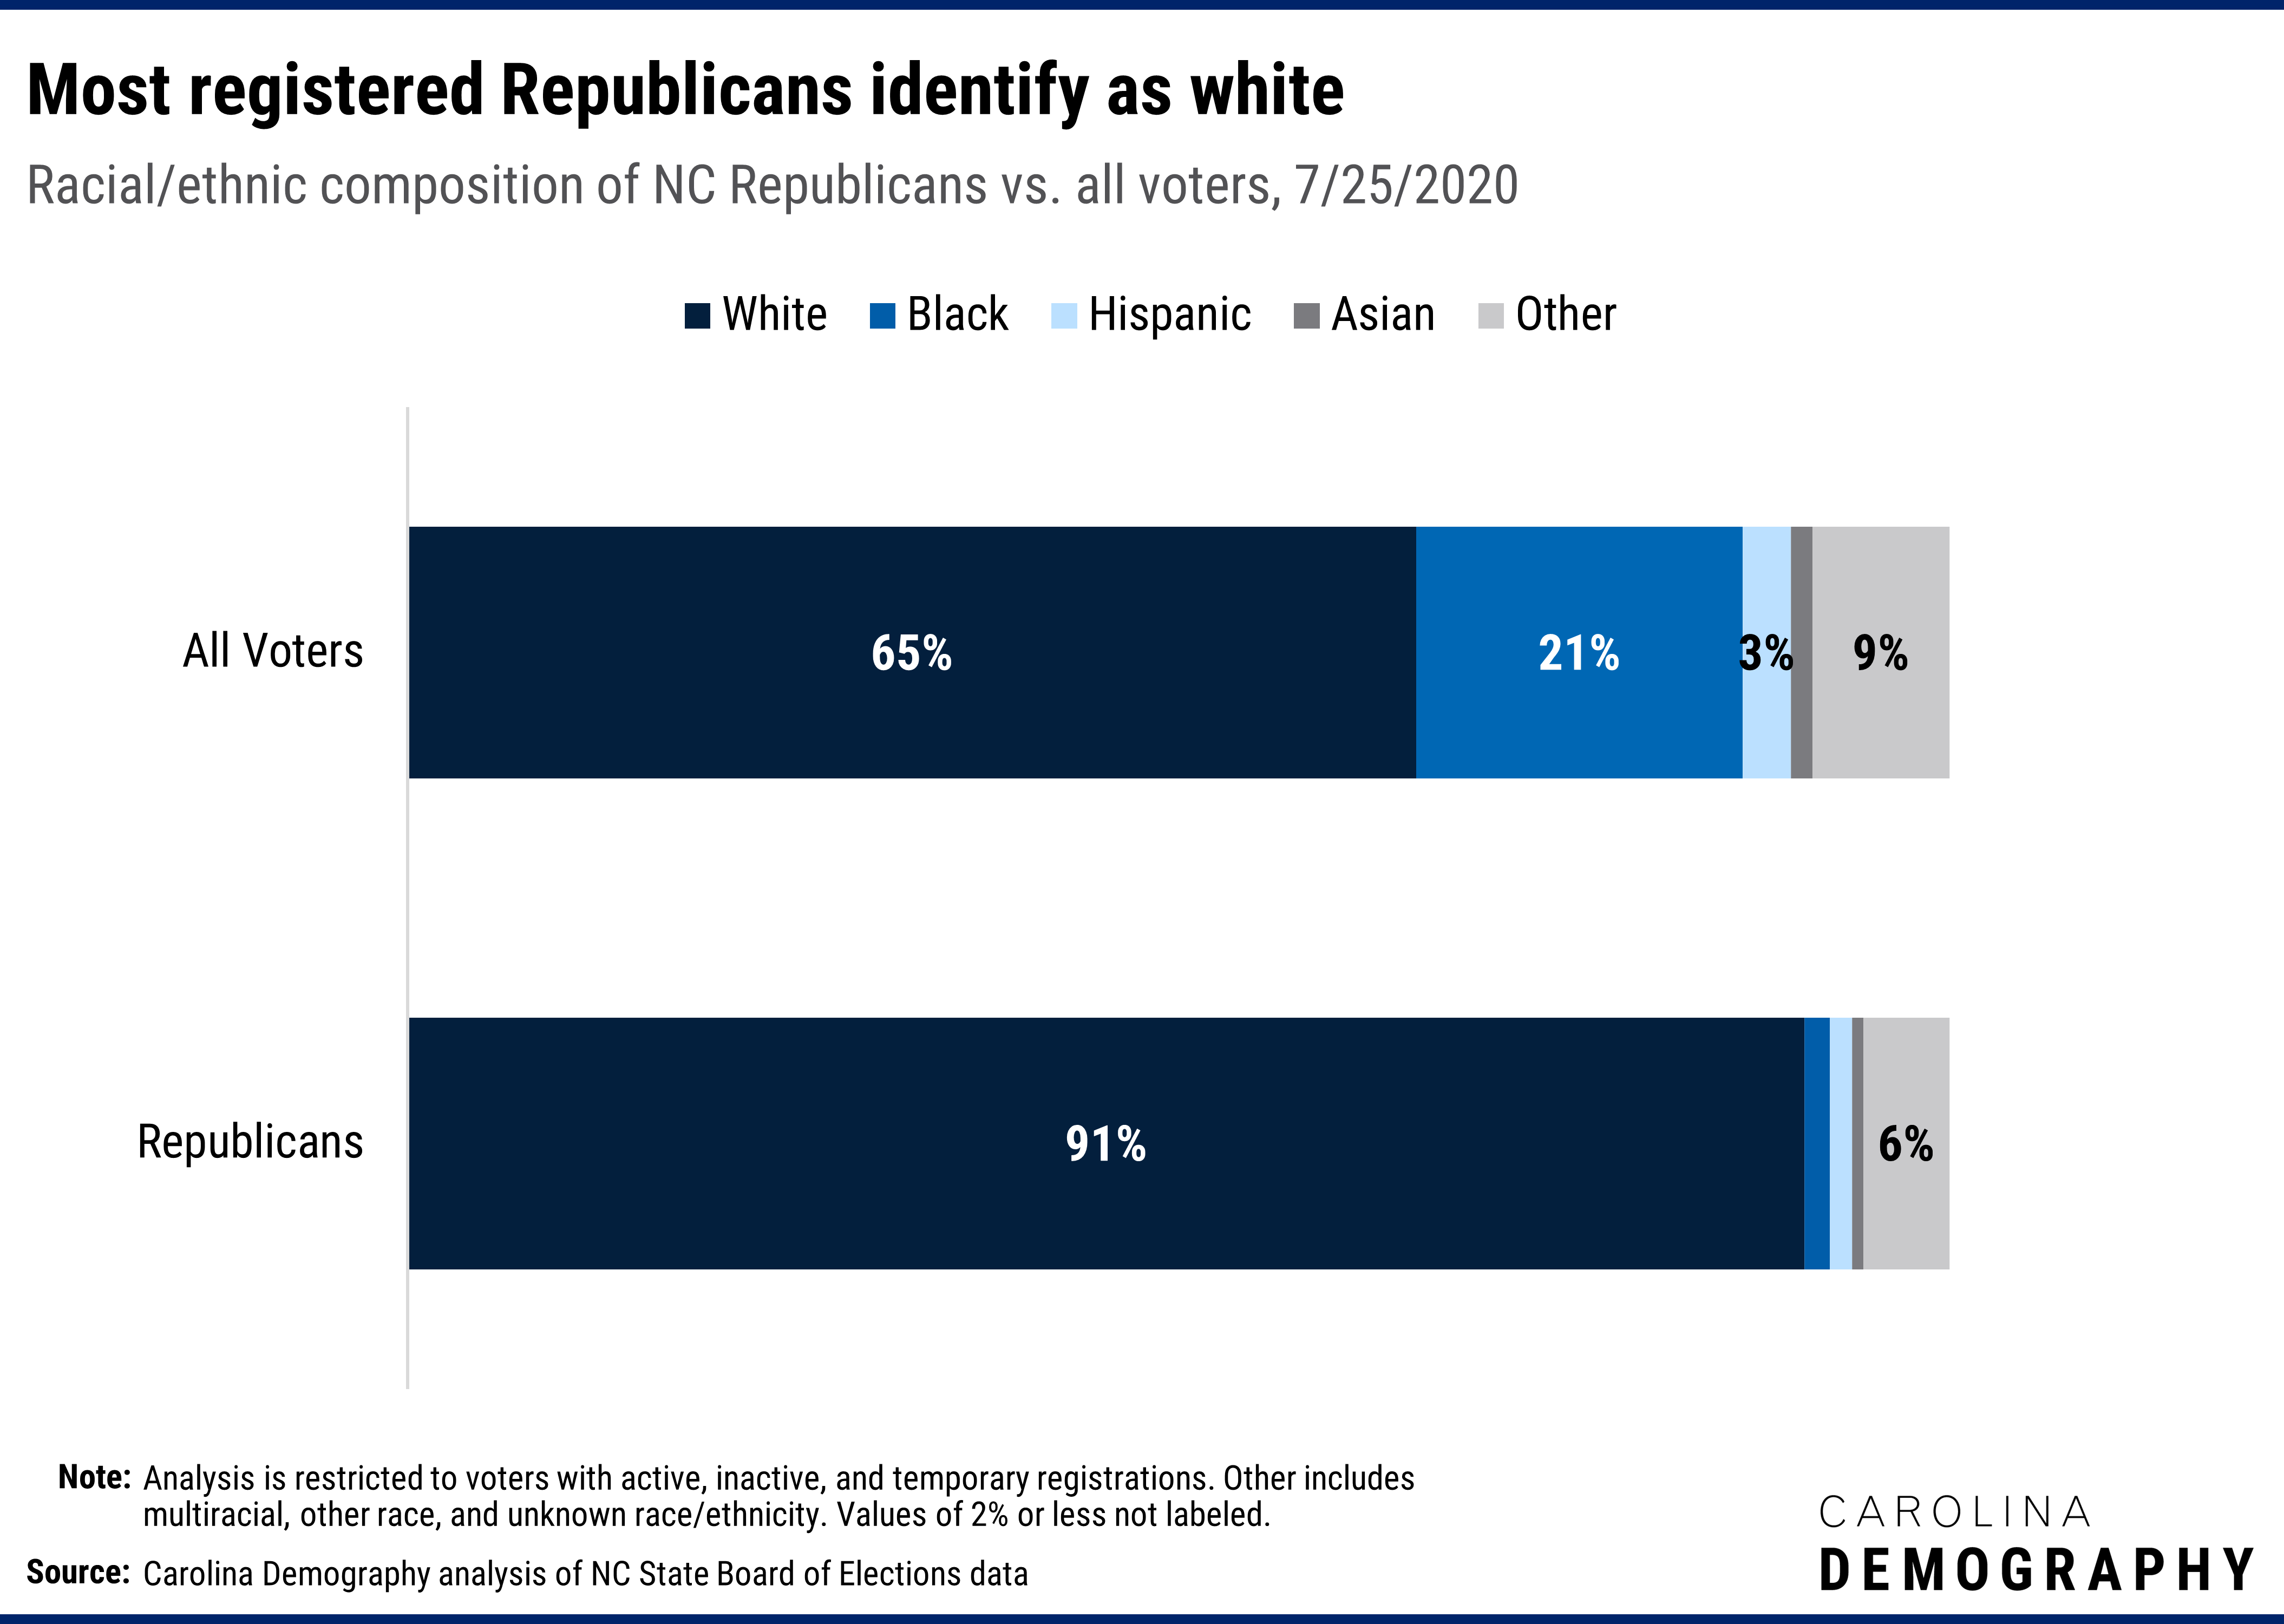 Most registered Republicans identify as white Racial/ethnic composition of NC Republicans vs. all voters, 7/25/2020. North Carolina's registered Republicans are overwhelmingly white. Ninety-two percent of Republican voters are white compared to 67% of the electorate overall.